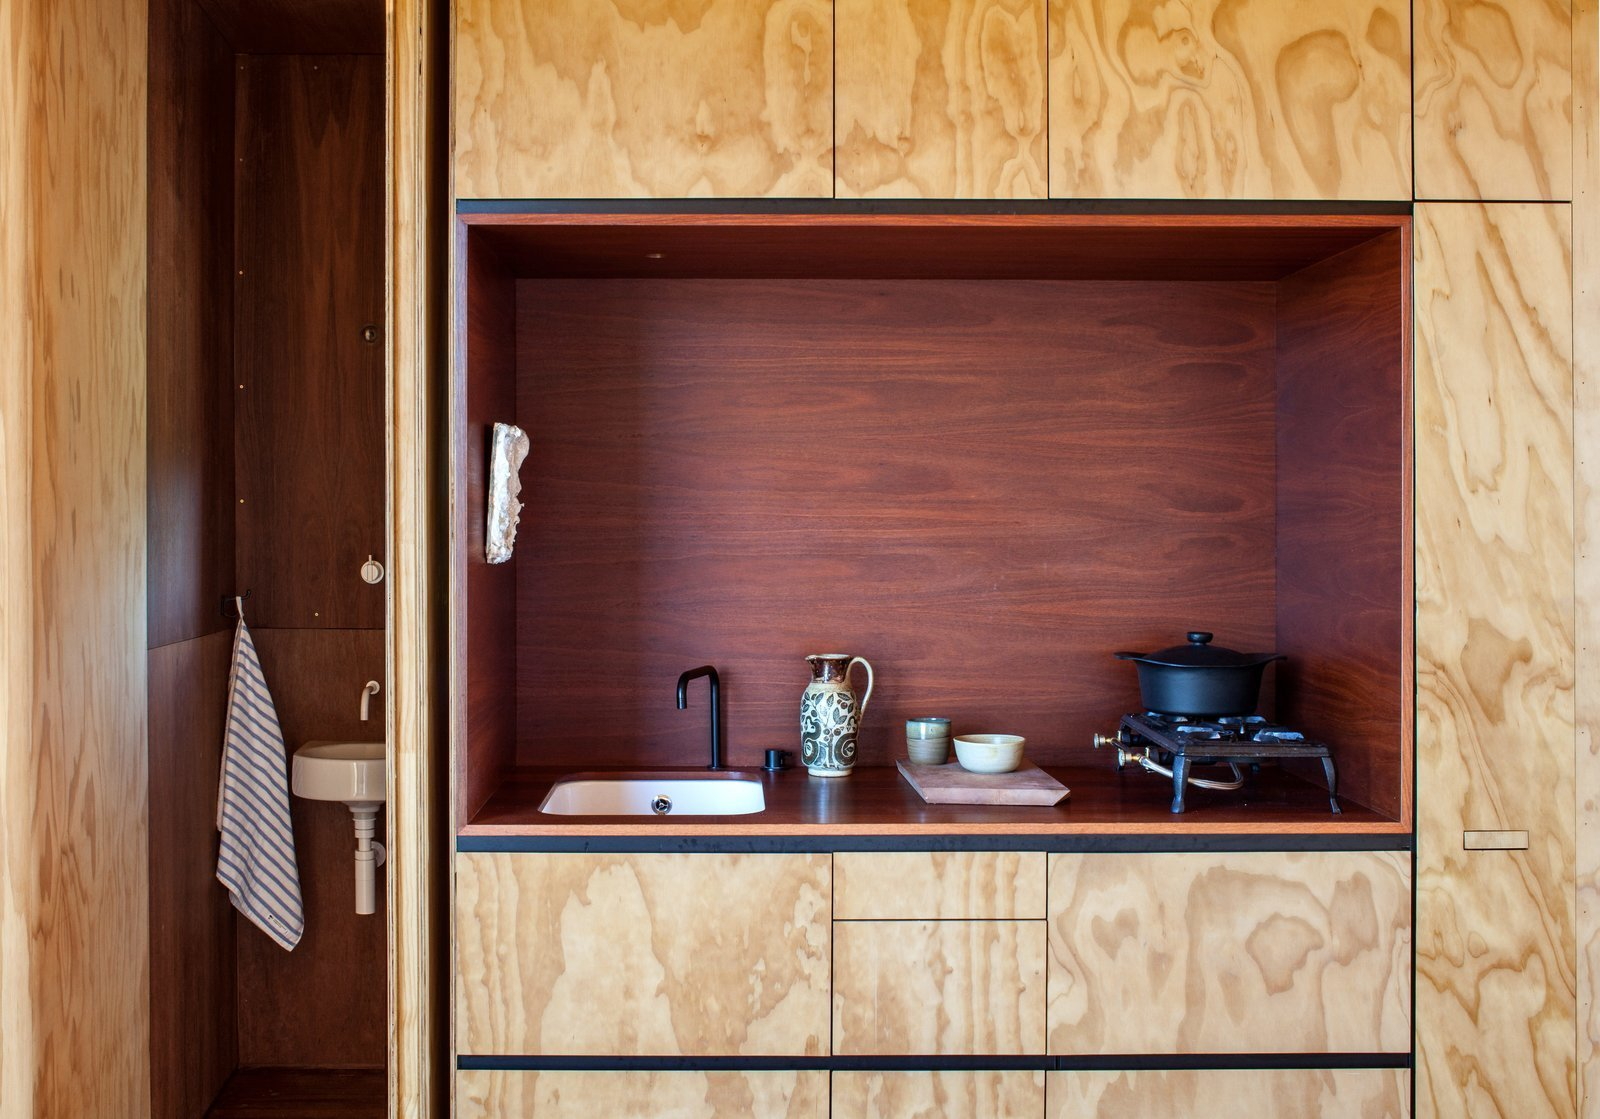 Kitchen, Undermount Sink, Wood Backsplashe, and Wood Counter Oiled jarrah eucalyptus contrasts with a kitchen niche of reddish-brown stained plywood in this kitchen alcove in a New Zealand cabin.  Dwell's Favorite Photos from 12 Brilliant Kitchen Backsplash Ideas